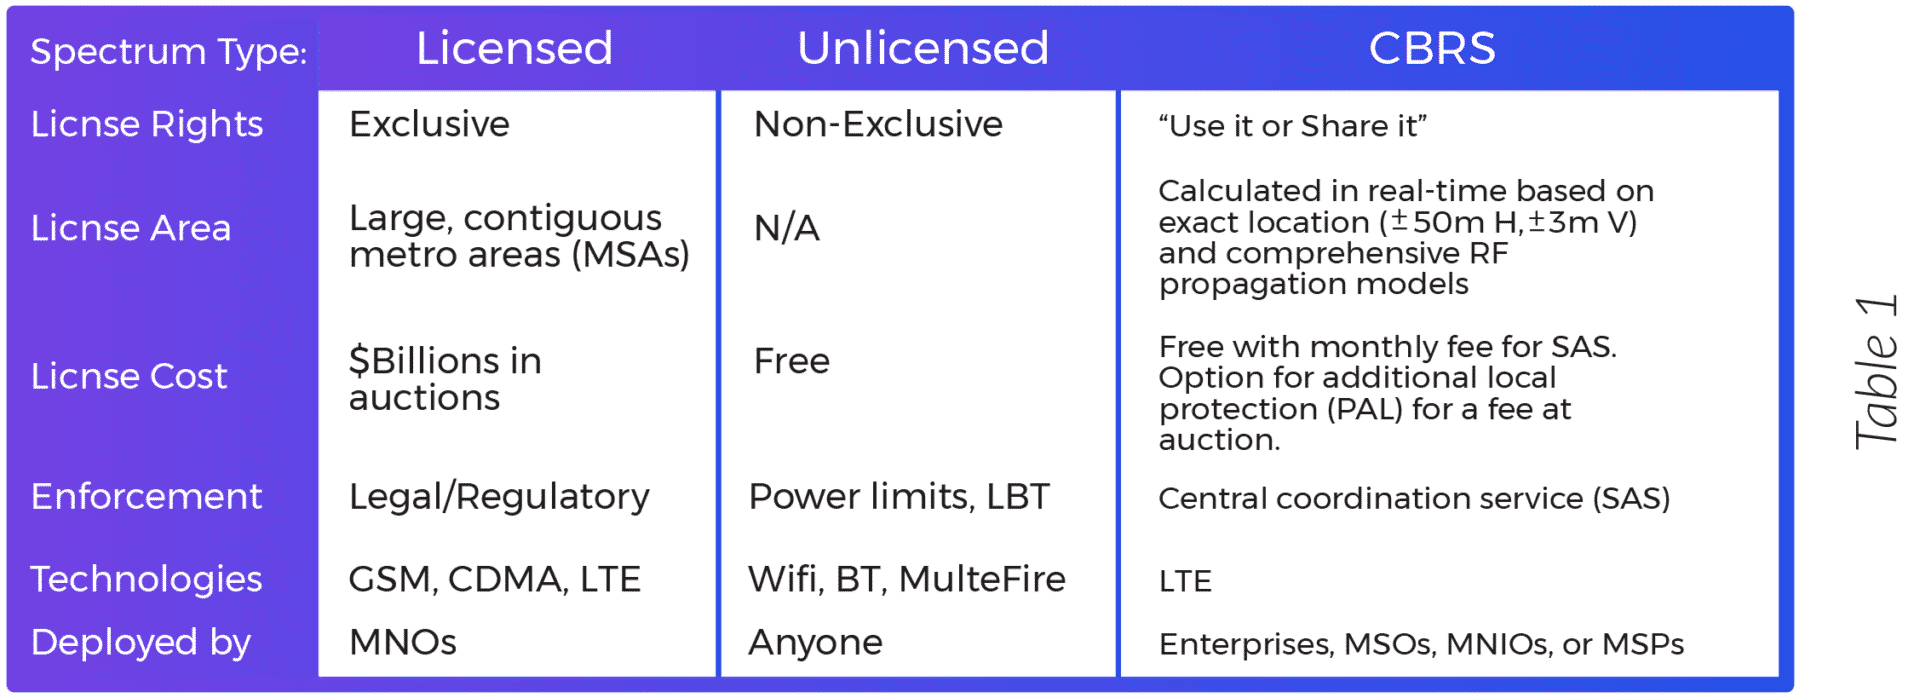 What is CBRS? - LTE in 3.5 GHz Shared Spectrum- Spectrum Type Table